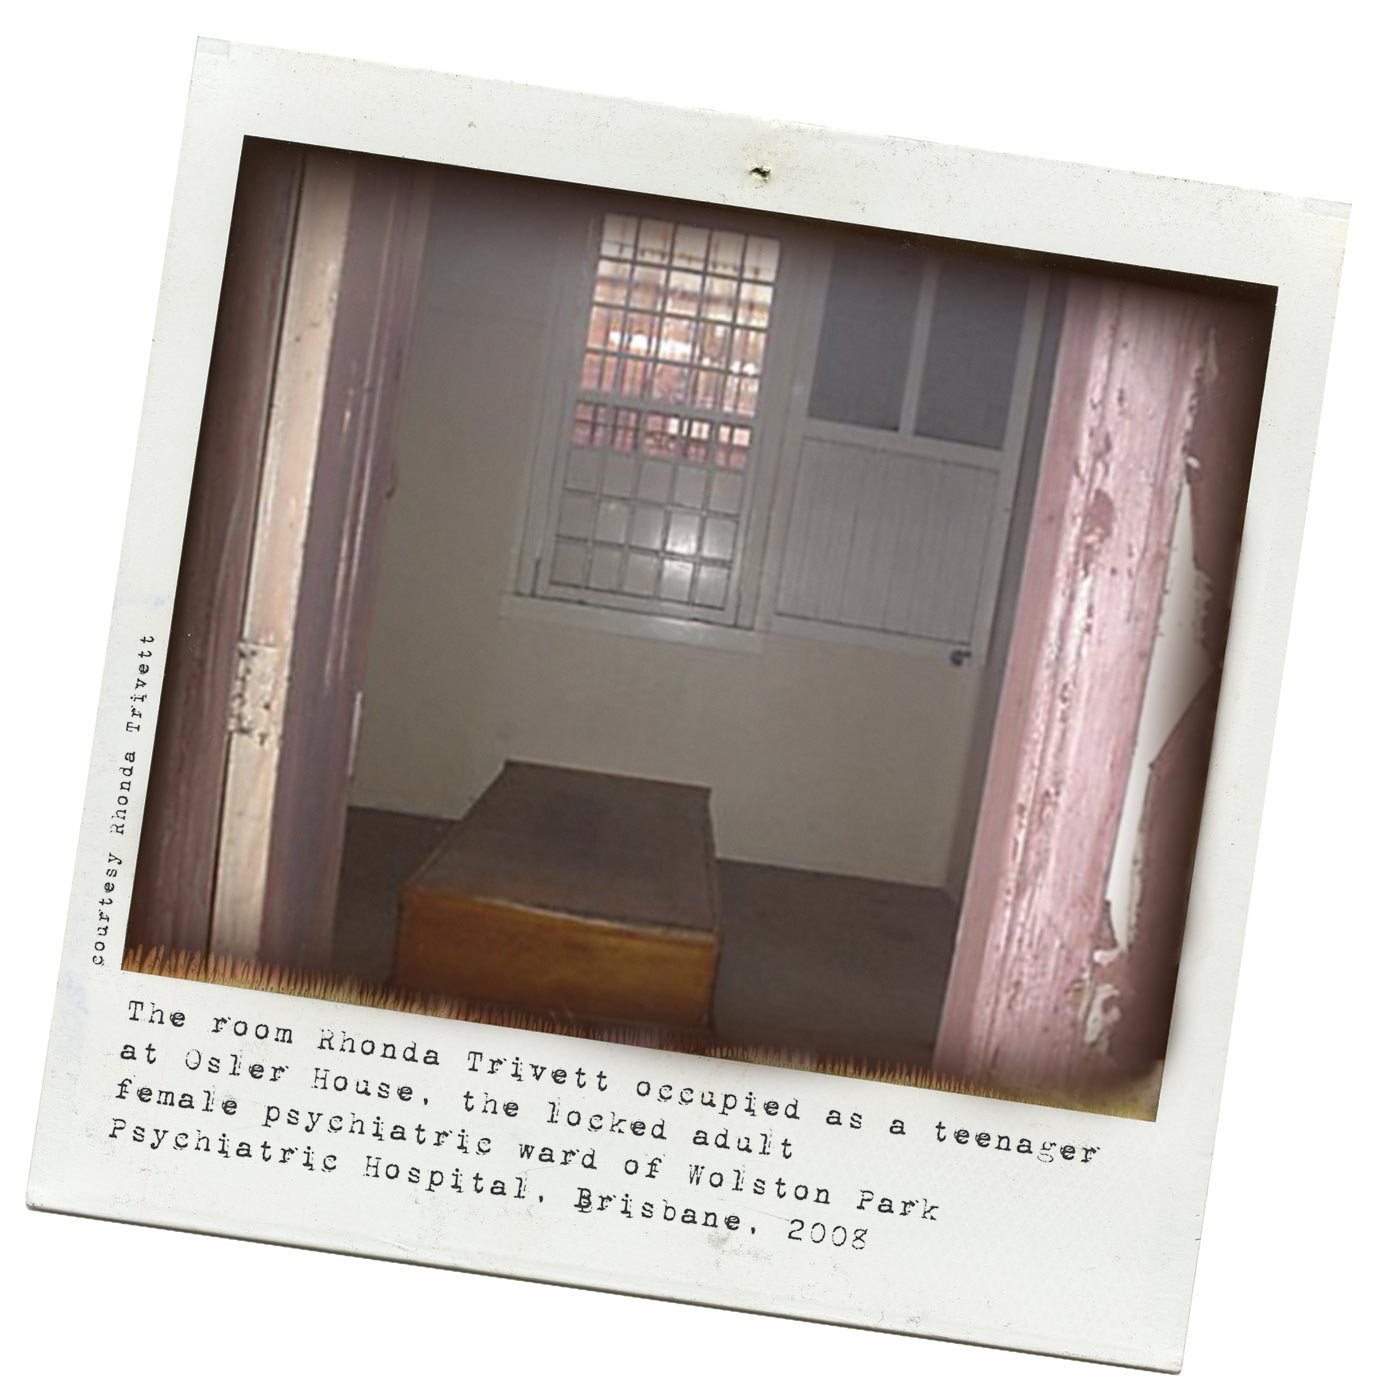 At right is a Polaroid photograph framed by a door, looking through to a low wooden bed base and a barred window. Typed text below reads 'The room Rhonda Trivett occupied as a teenager at Osler House, the locked adult female psychiatric ward of Wolston Park Psychiatric Hospital, Brisbane, 2008'. - click to view larger image